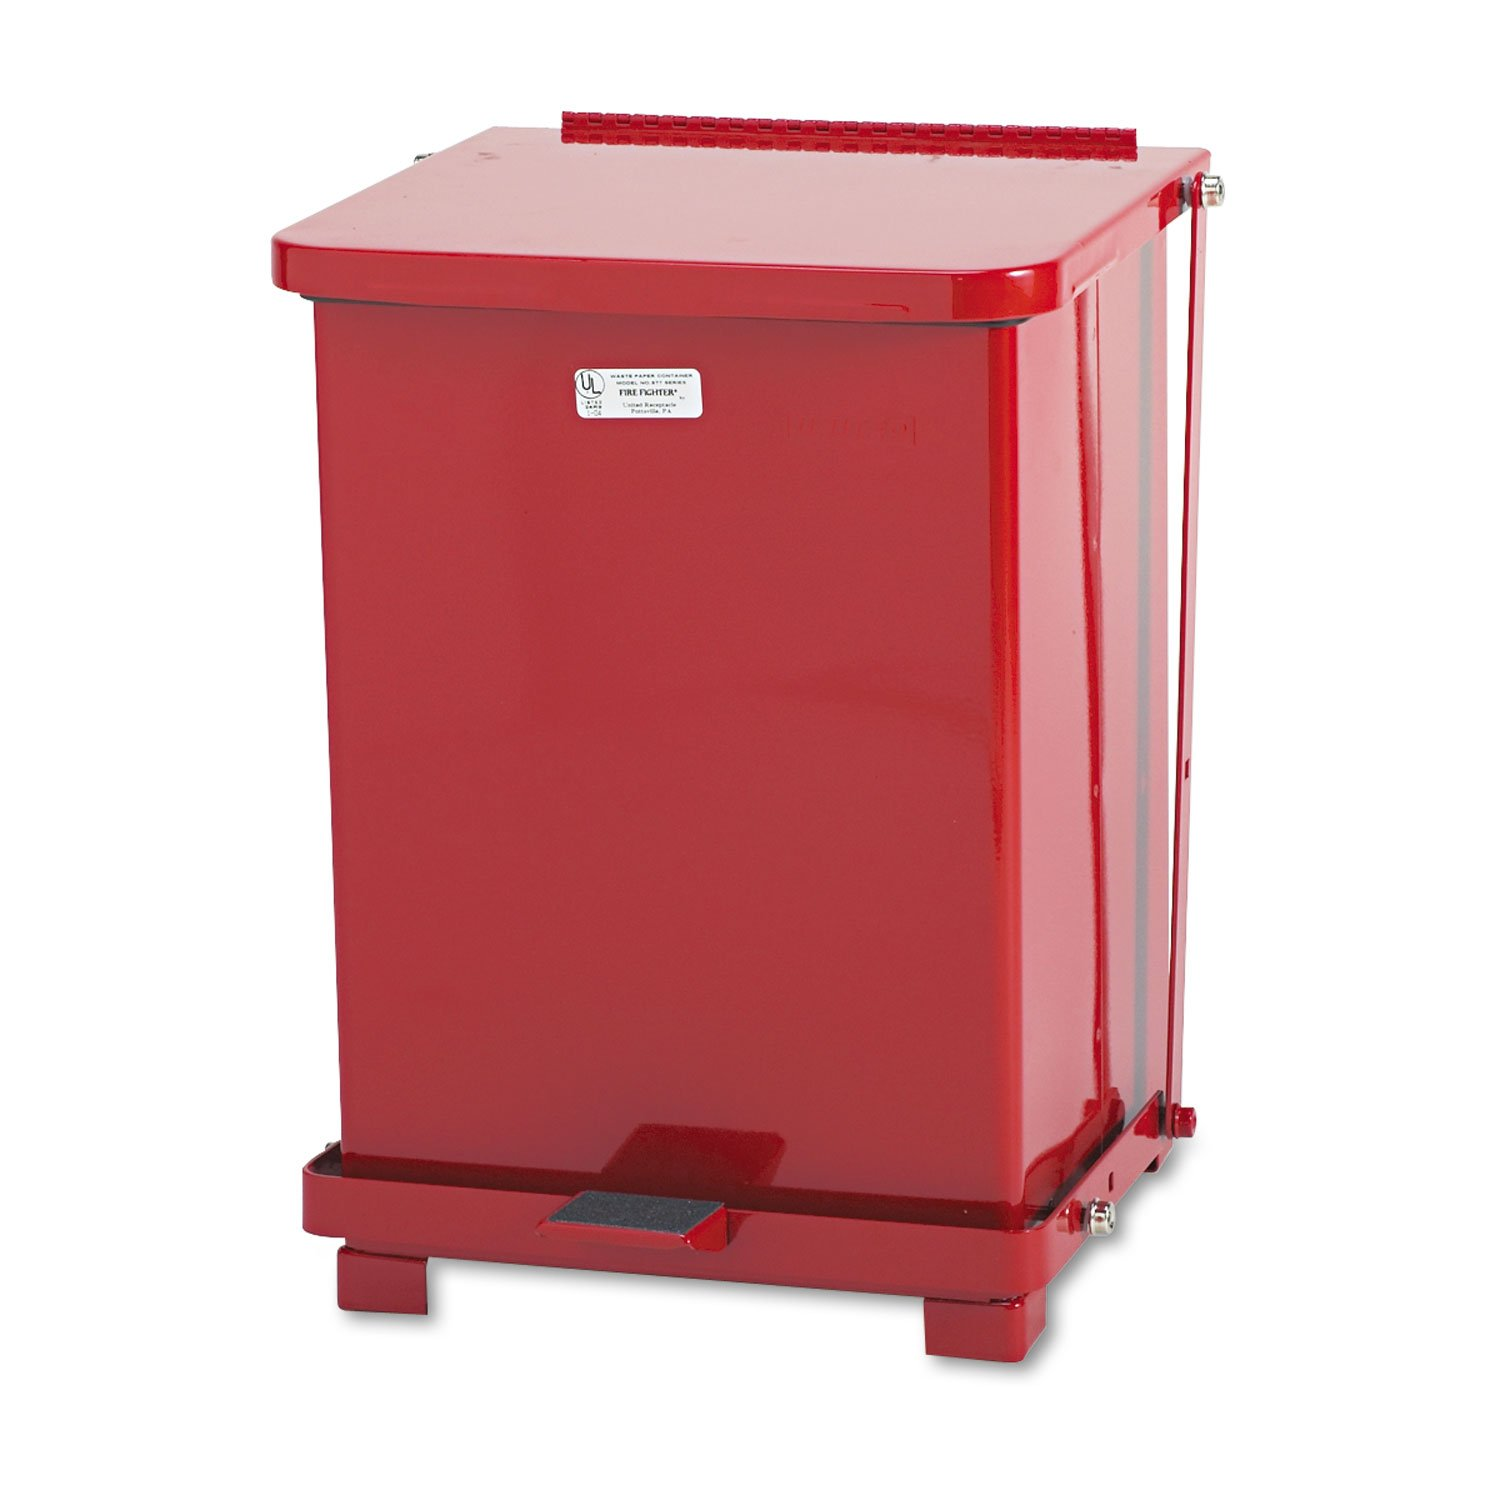 Rubbermaid Commercial ST7ERDPL Defenders Biohazard Step Can, Square, Steel, 7gal, Red by Rubbermaid